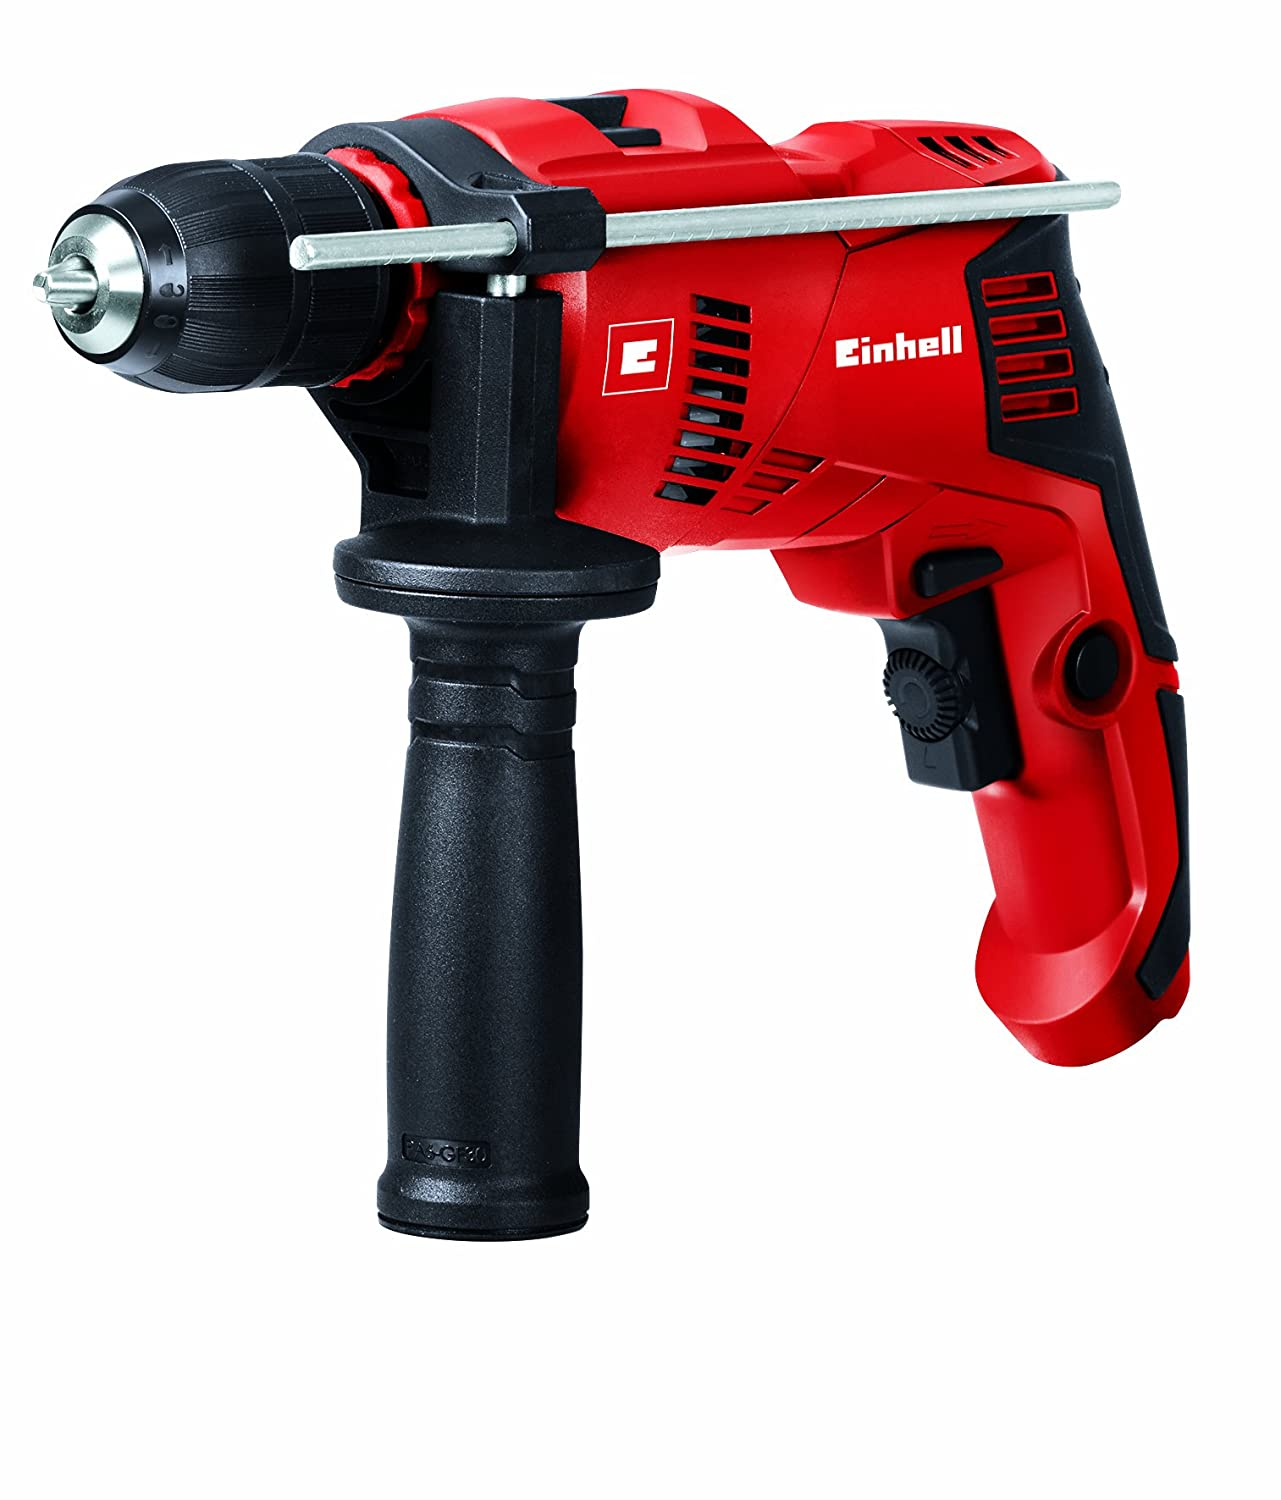 Einhell TE-ID 500 E 550 W Corded Impact Drill with Electronic Speed Control - Red 4259610